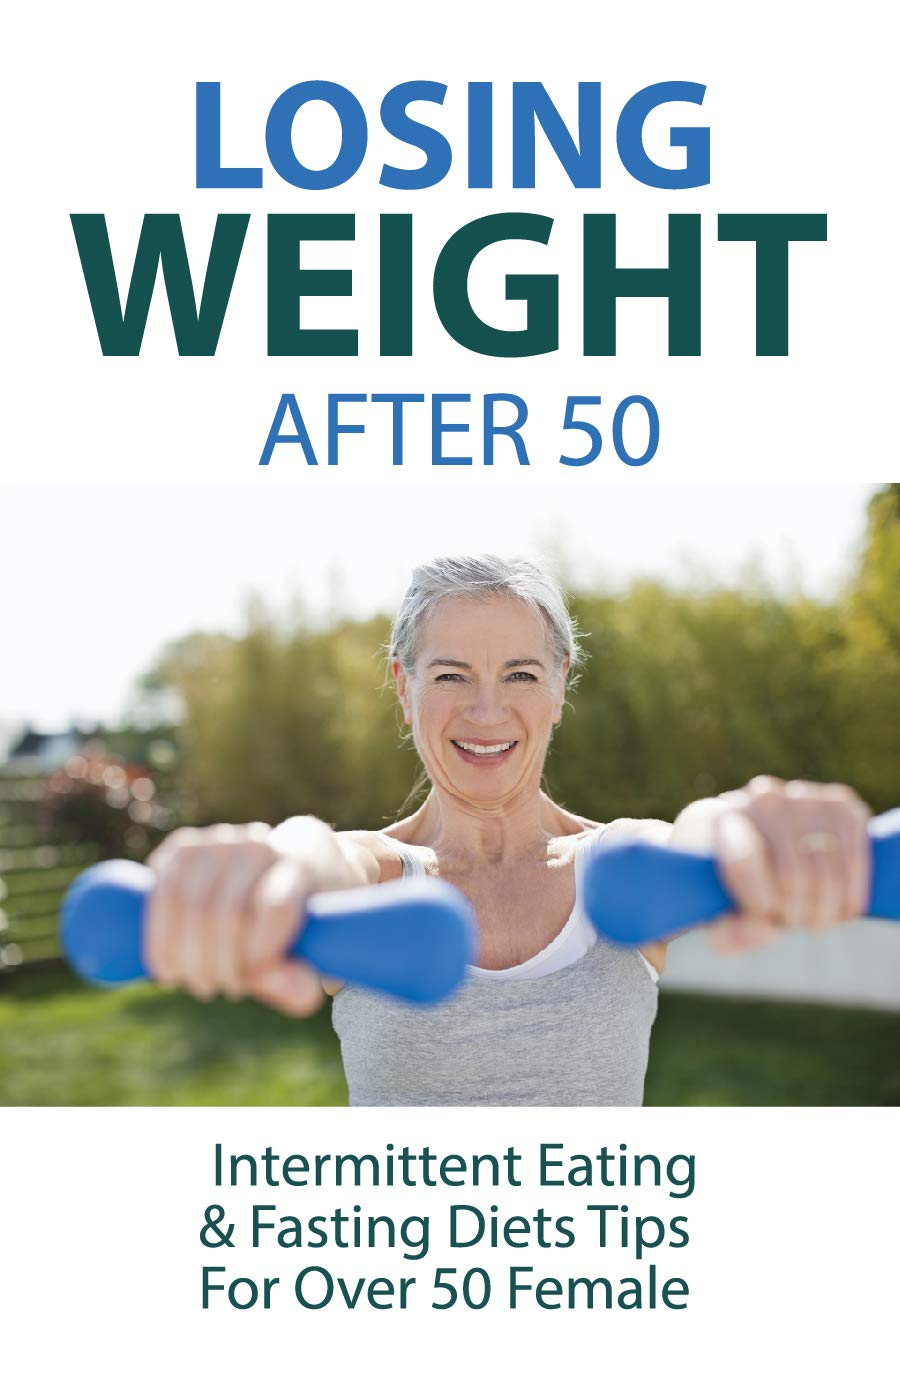 Losing Weight After 50: Intermittent Eating & Fasting Diets Tips For Over 50 Female: How To Start Intermittent Fasting